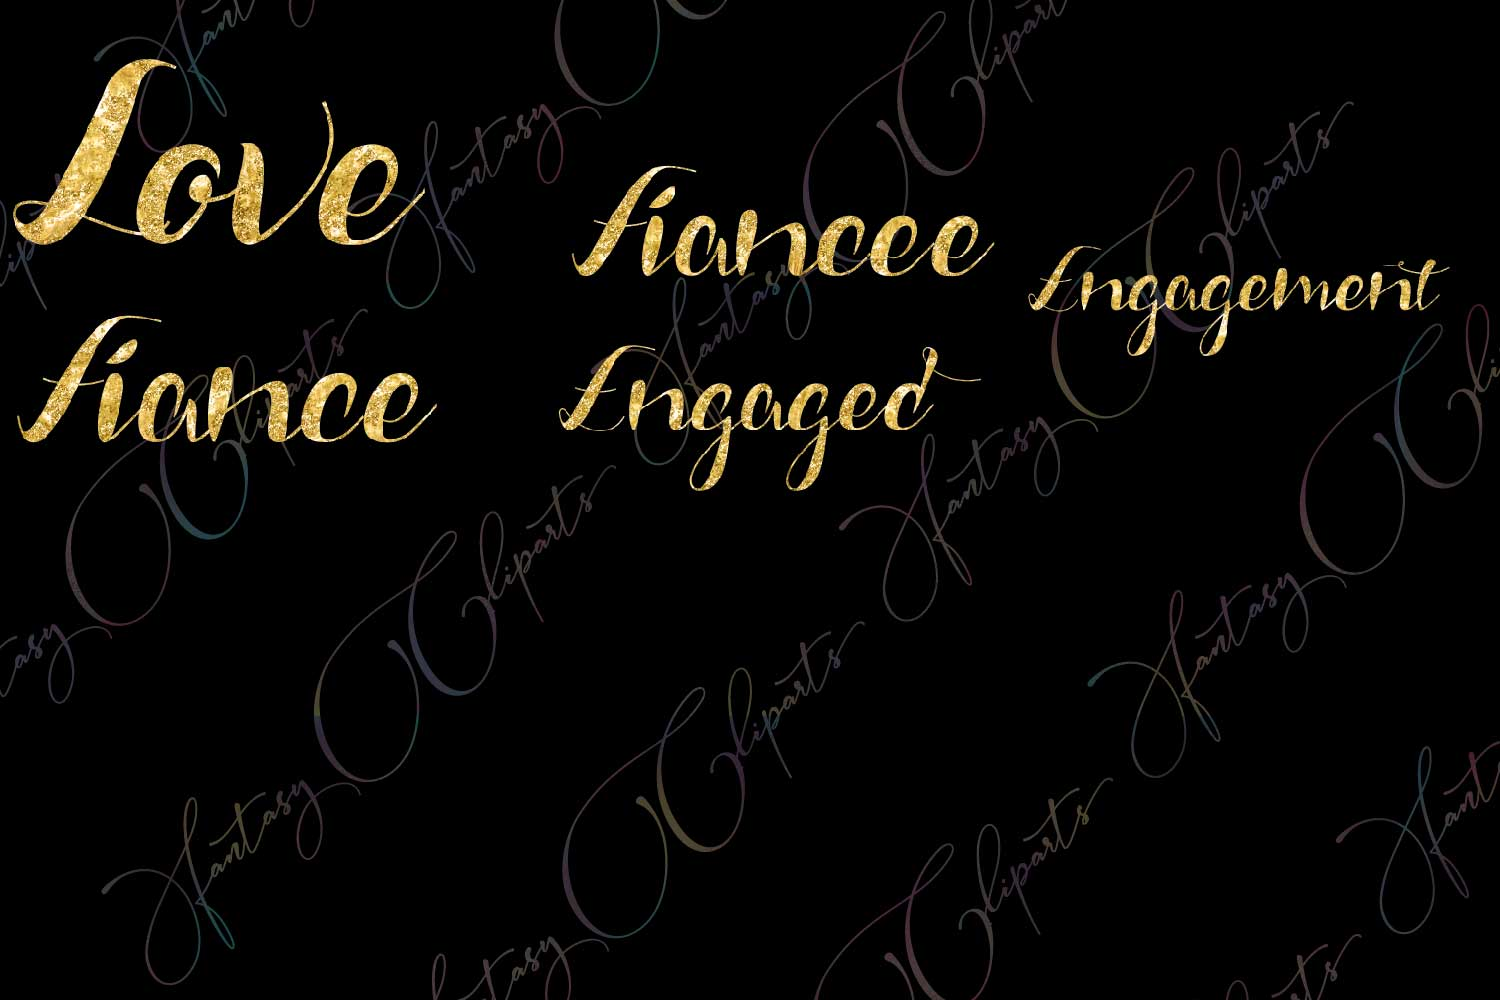 Engagement Word Art Clipart example image 4